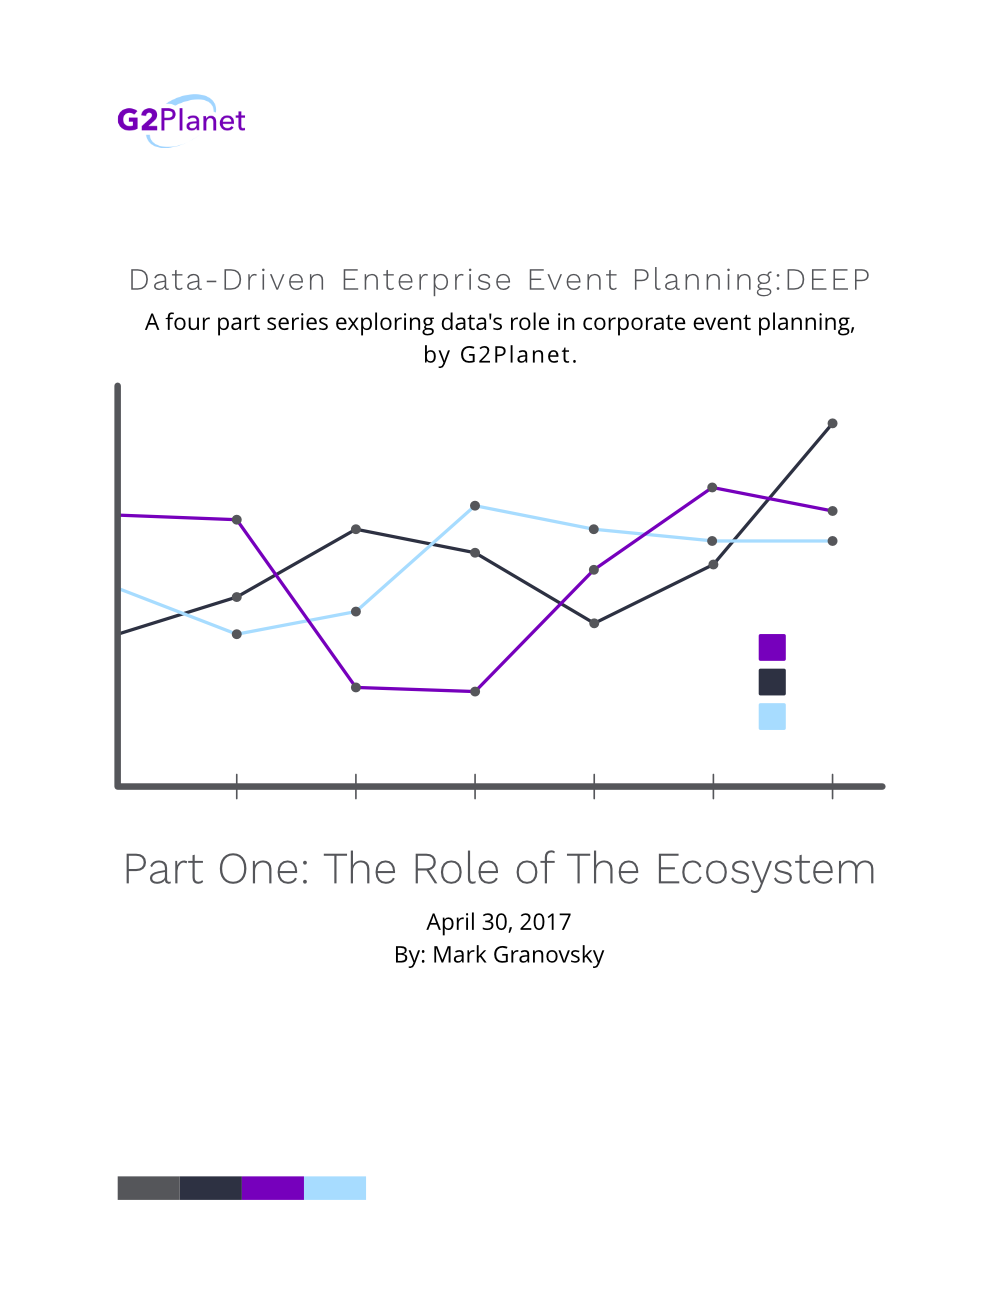 Enterprise Event Management Whitepaper: The Role of The Ecosystem